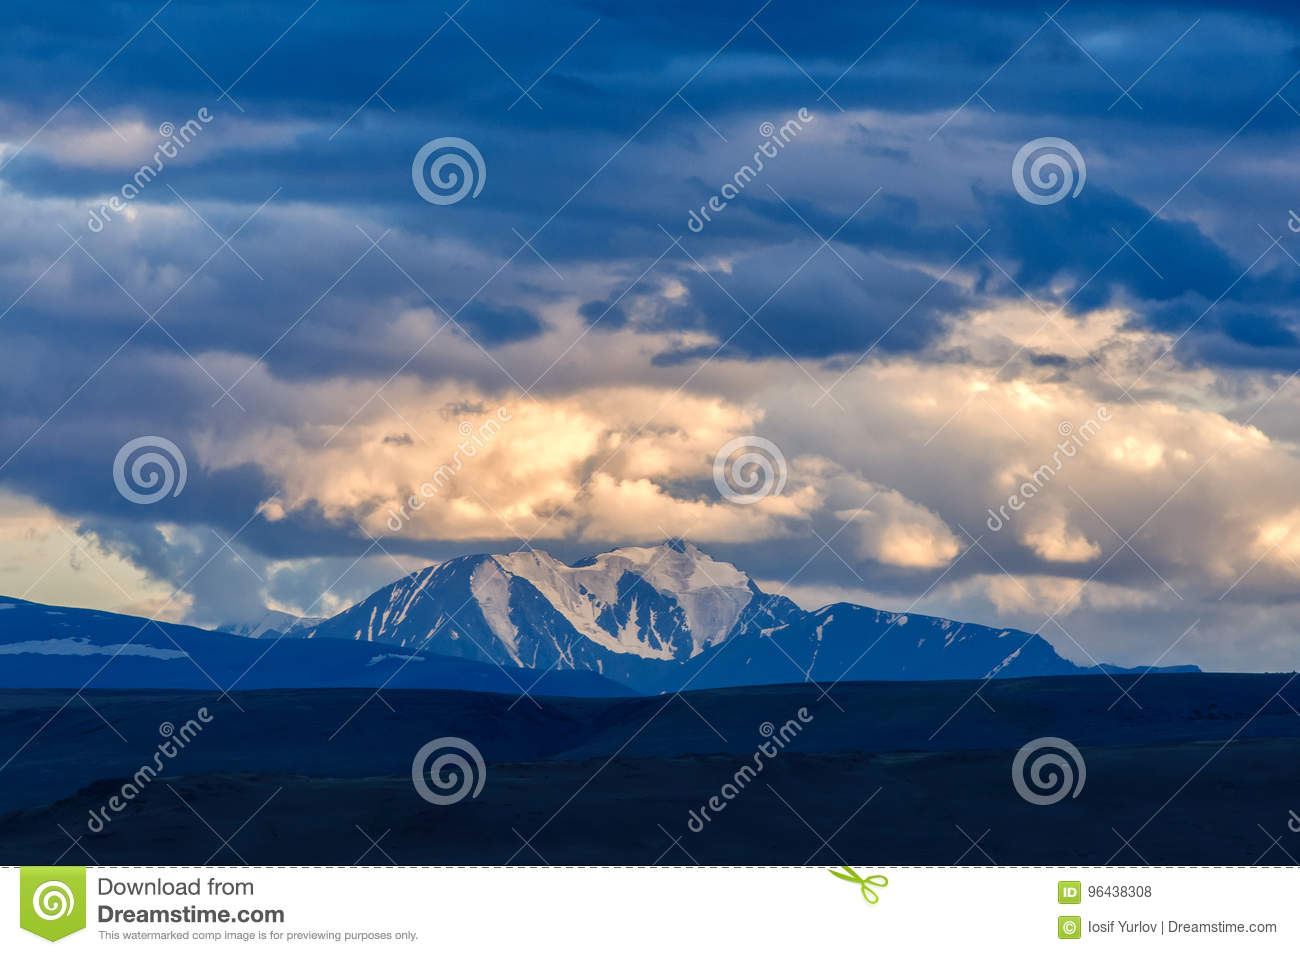 Clouds passing over mountain pinnacle in sunset light